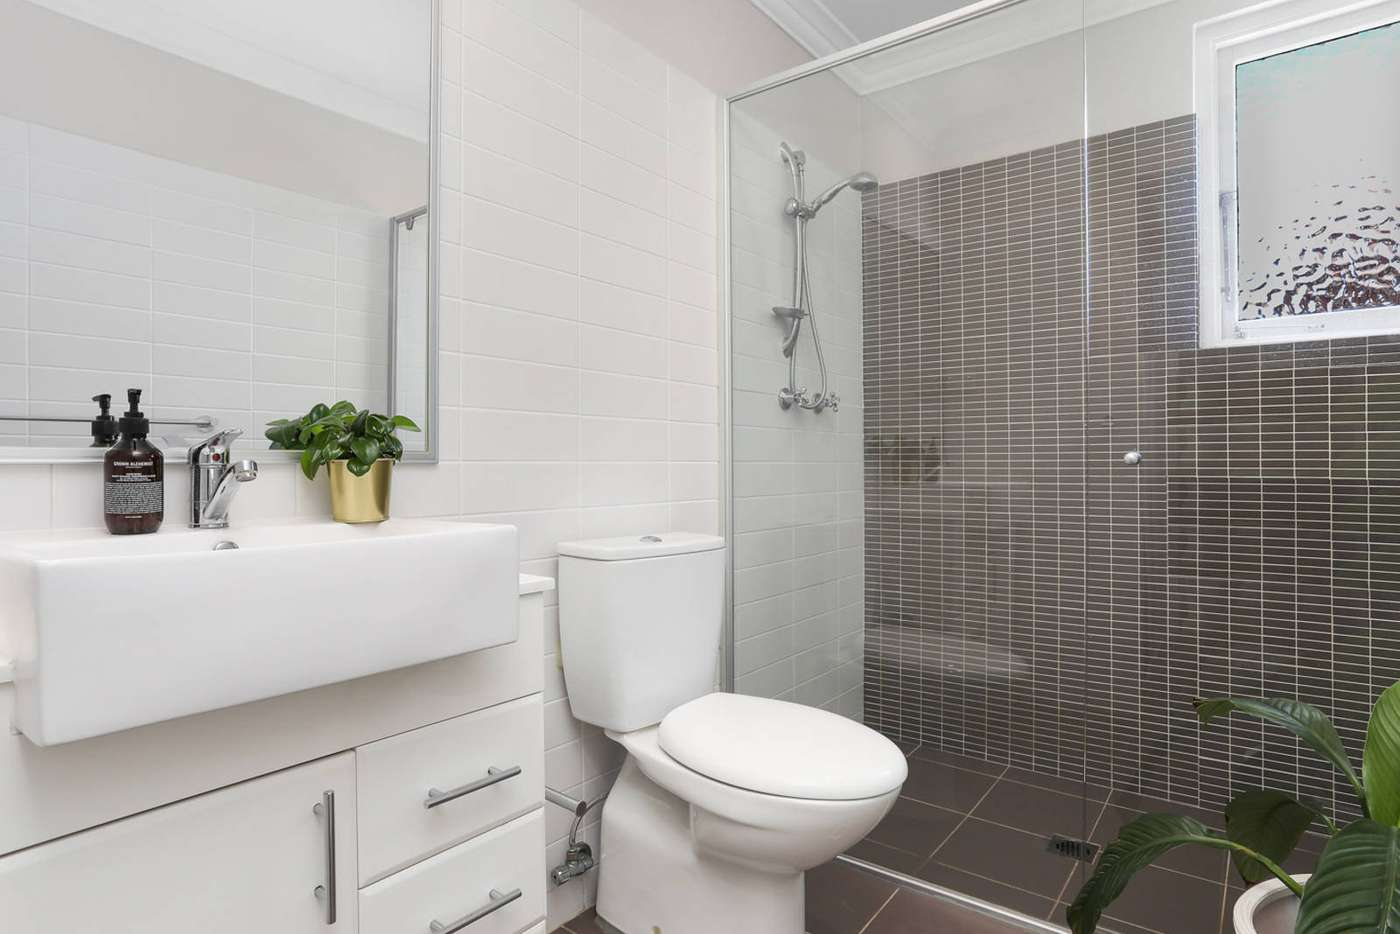 Fifth view of Homely apartment listing, 8/5 Elanora Street, Rose Bay NSW 2029